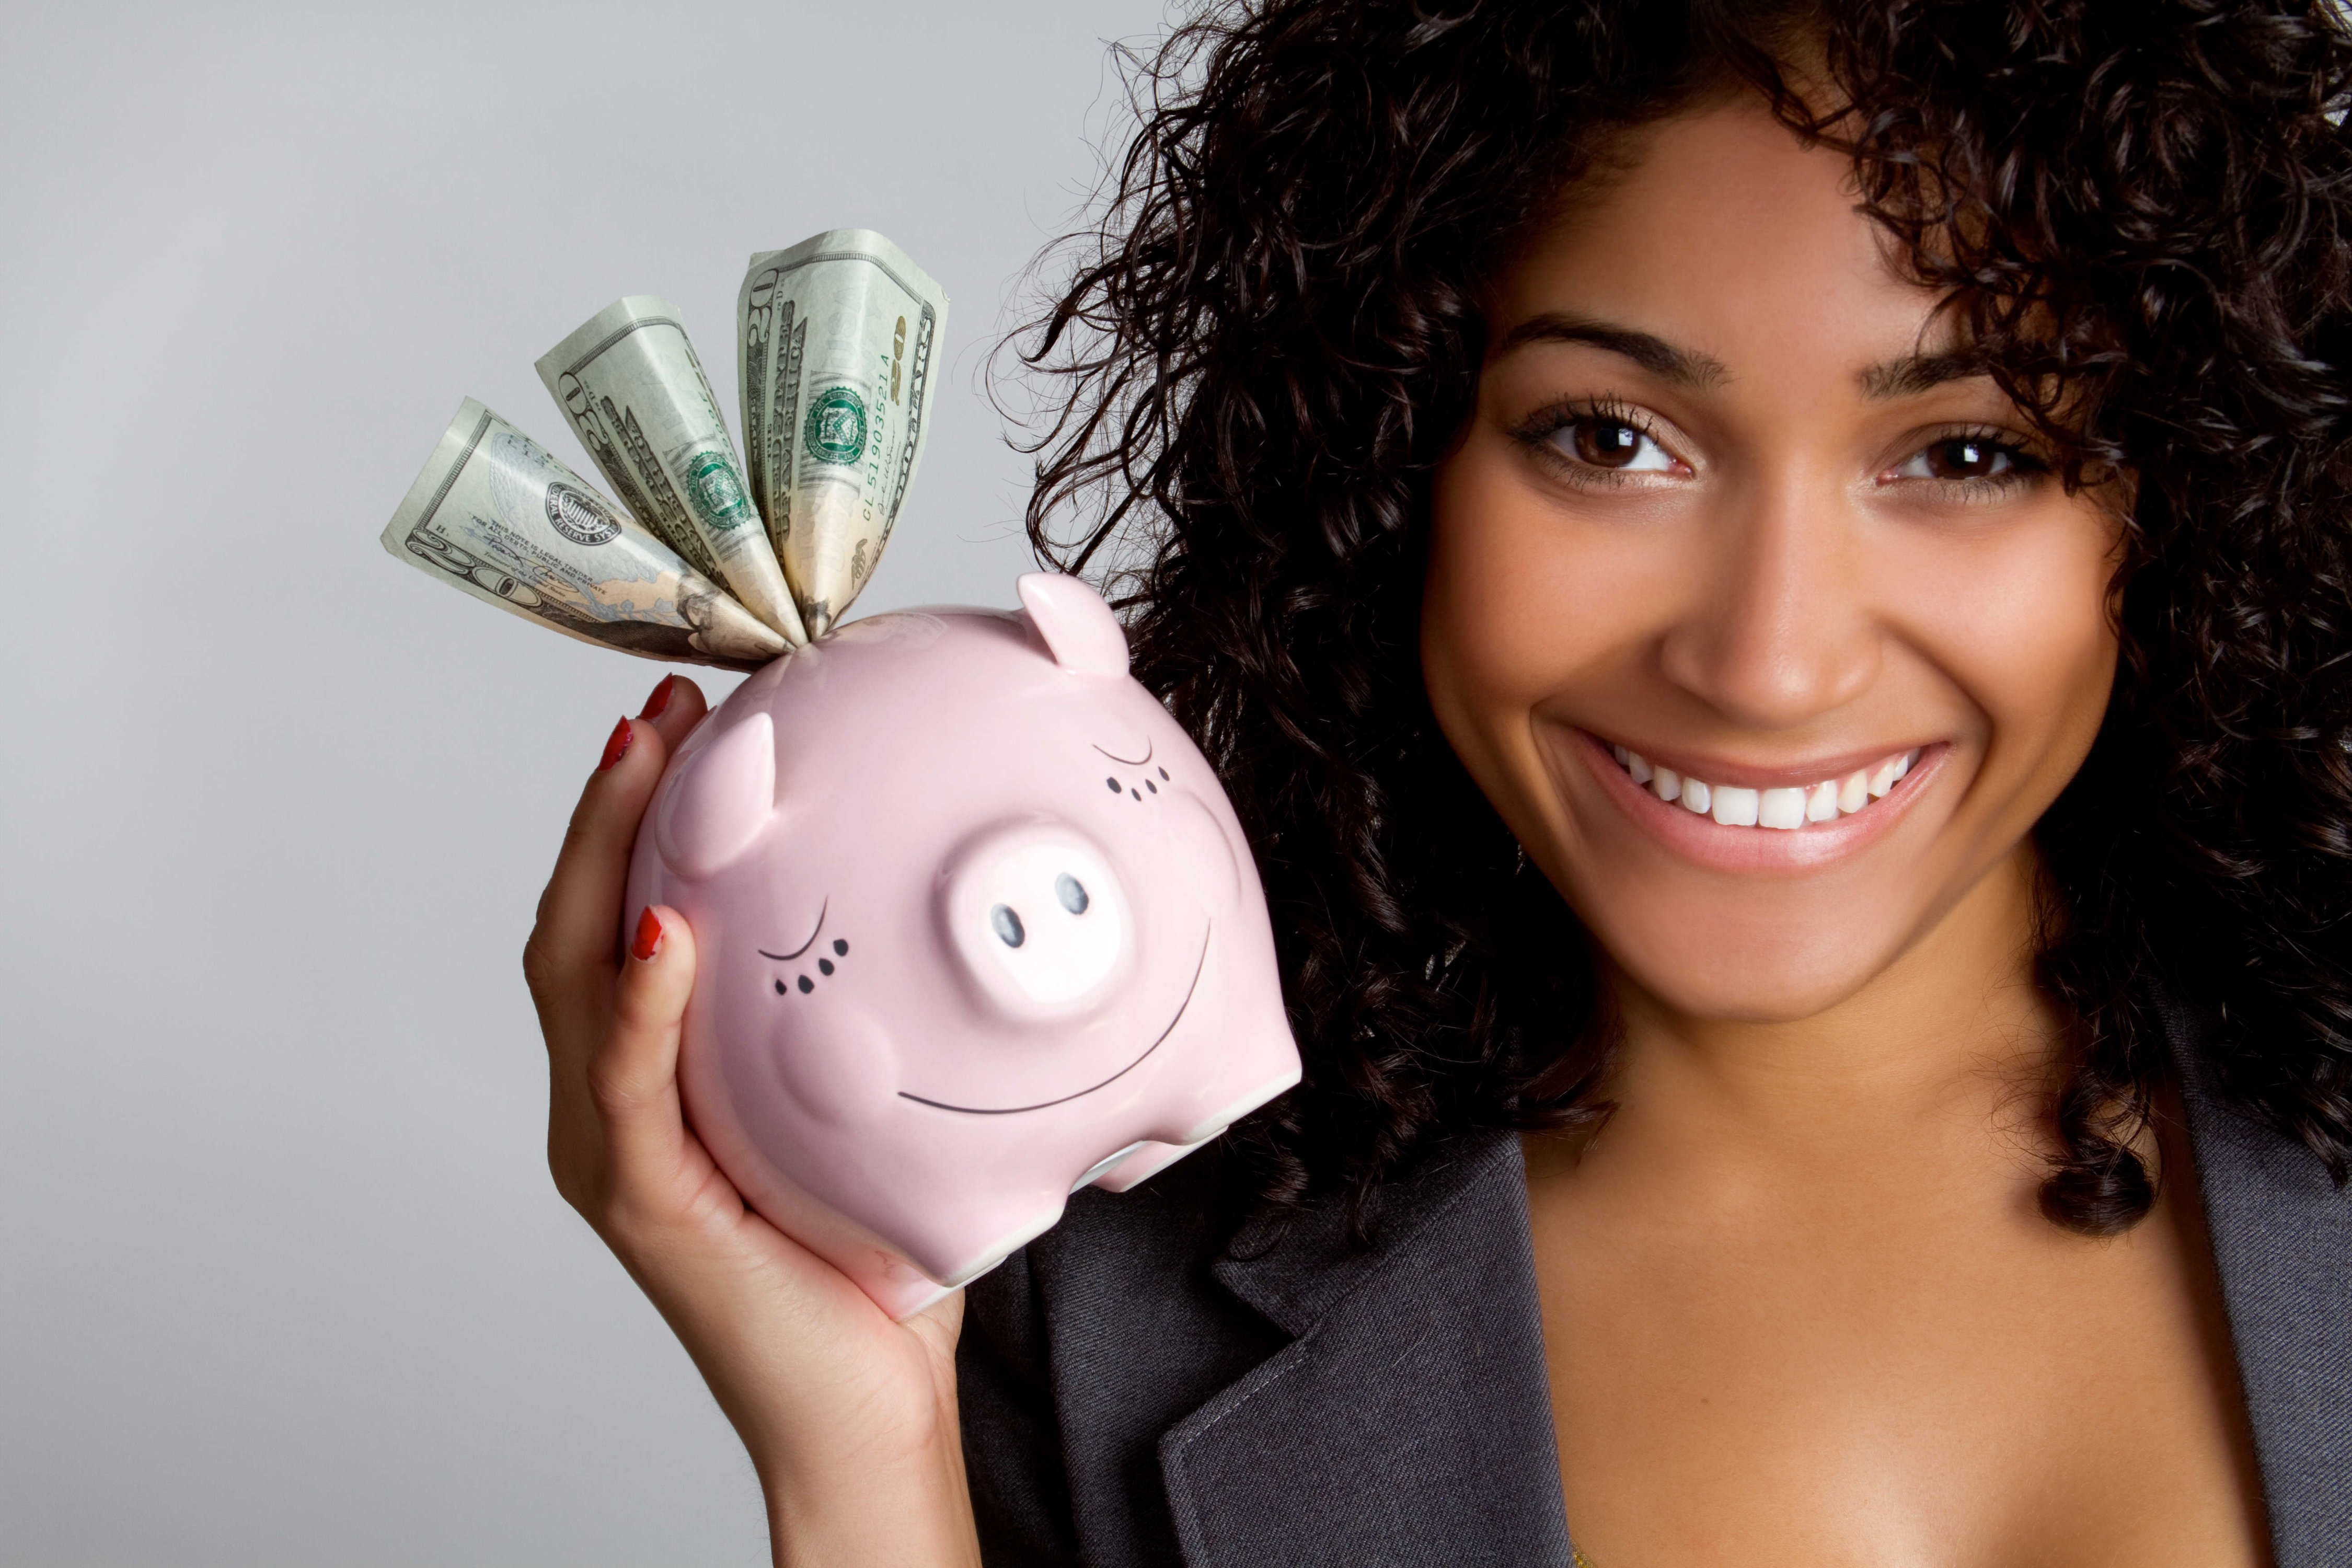 'Budgeting' for people who don't budget (and probably never will)